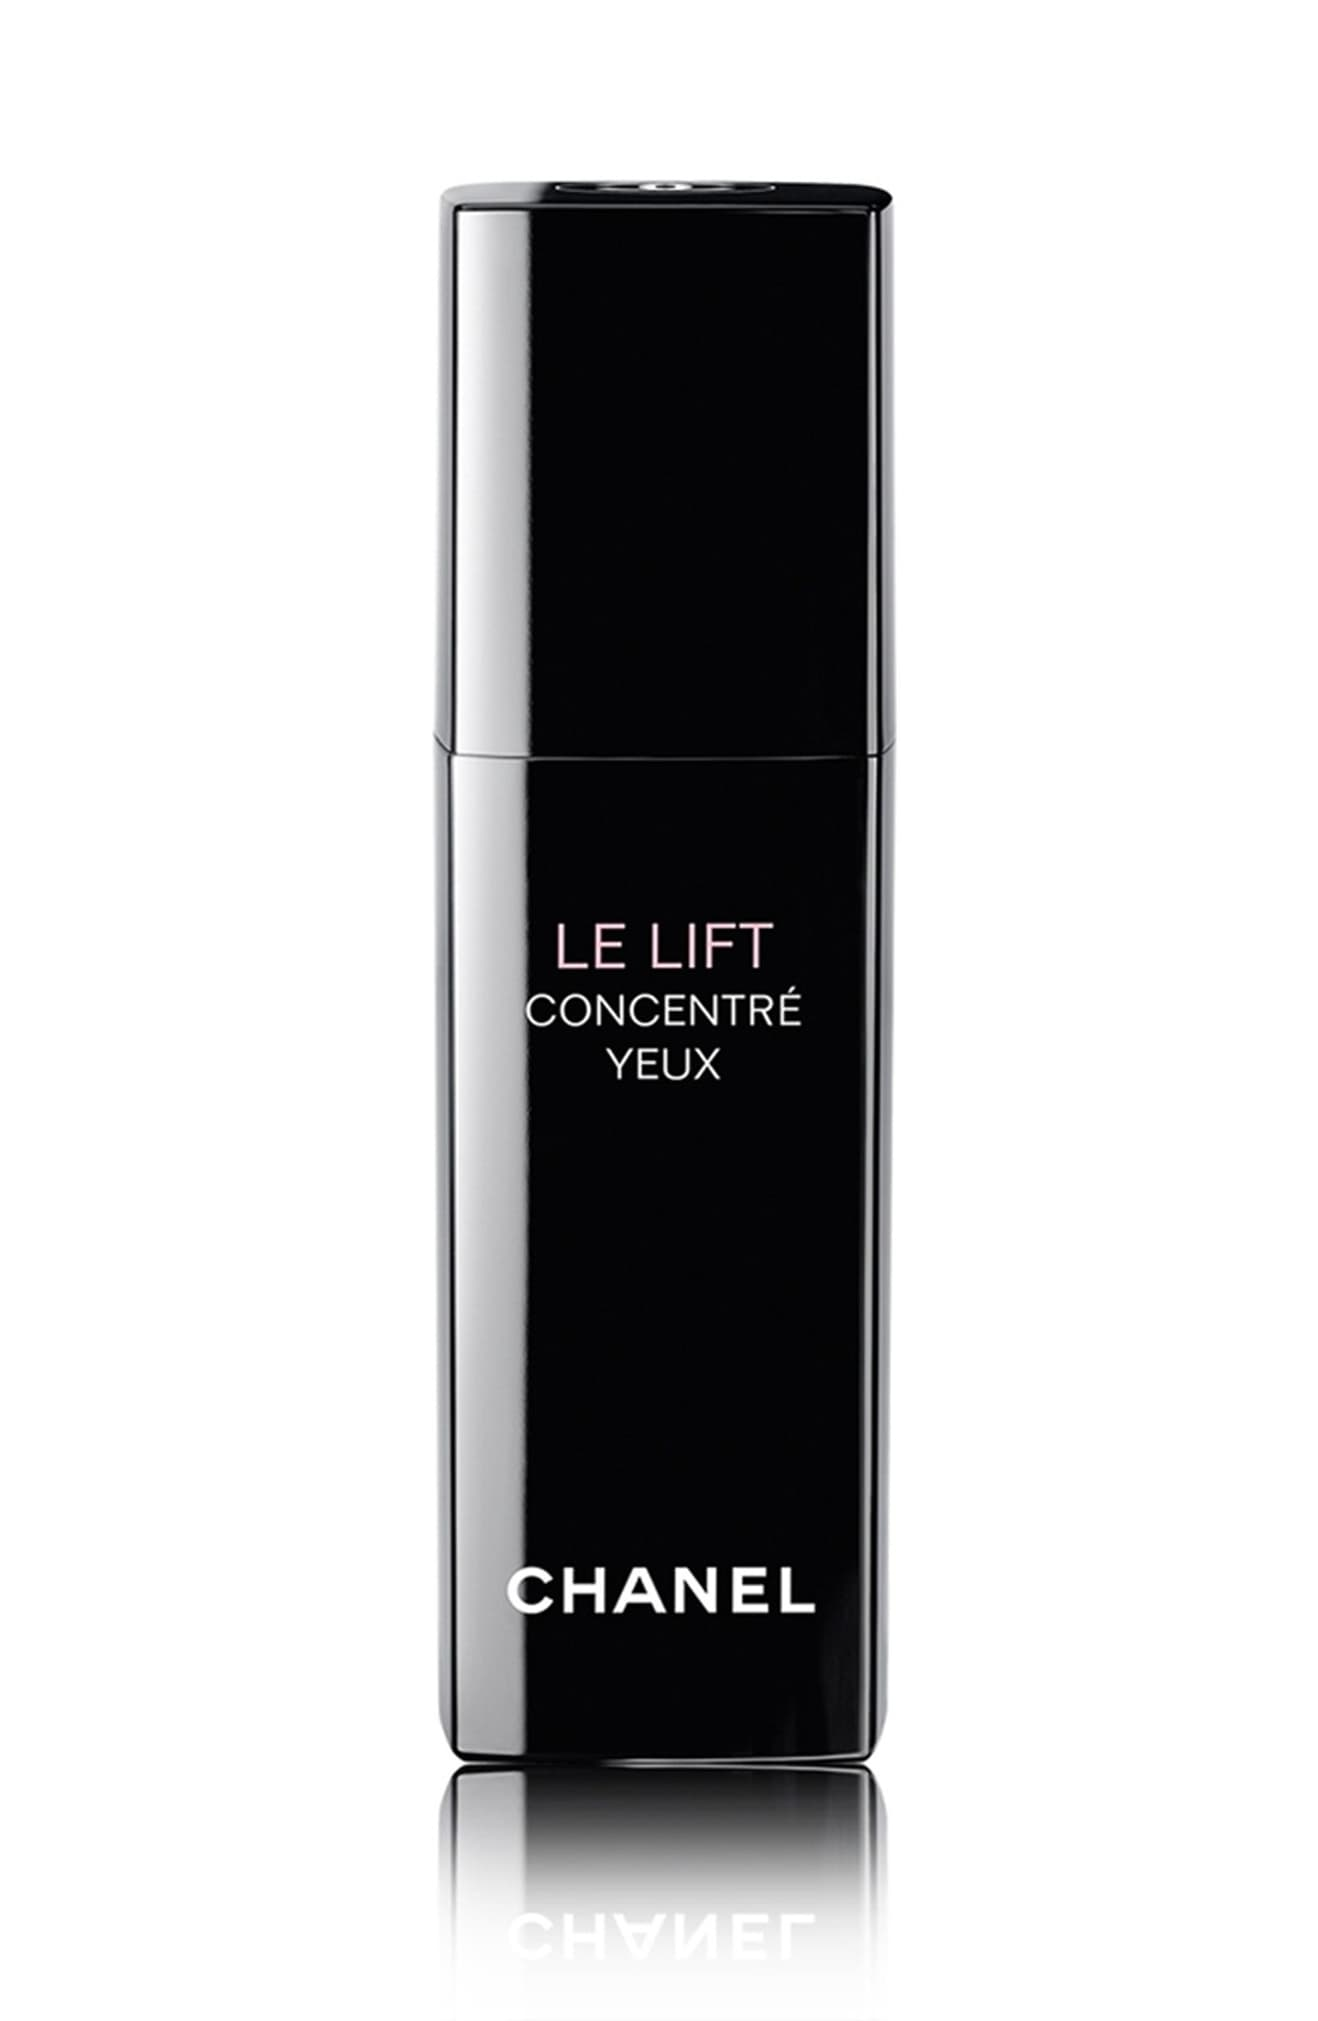 CHANEL-Le Lift Concentré Yeux Firming Anti-Wrinkle Eye Concentrate